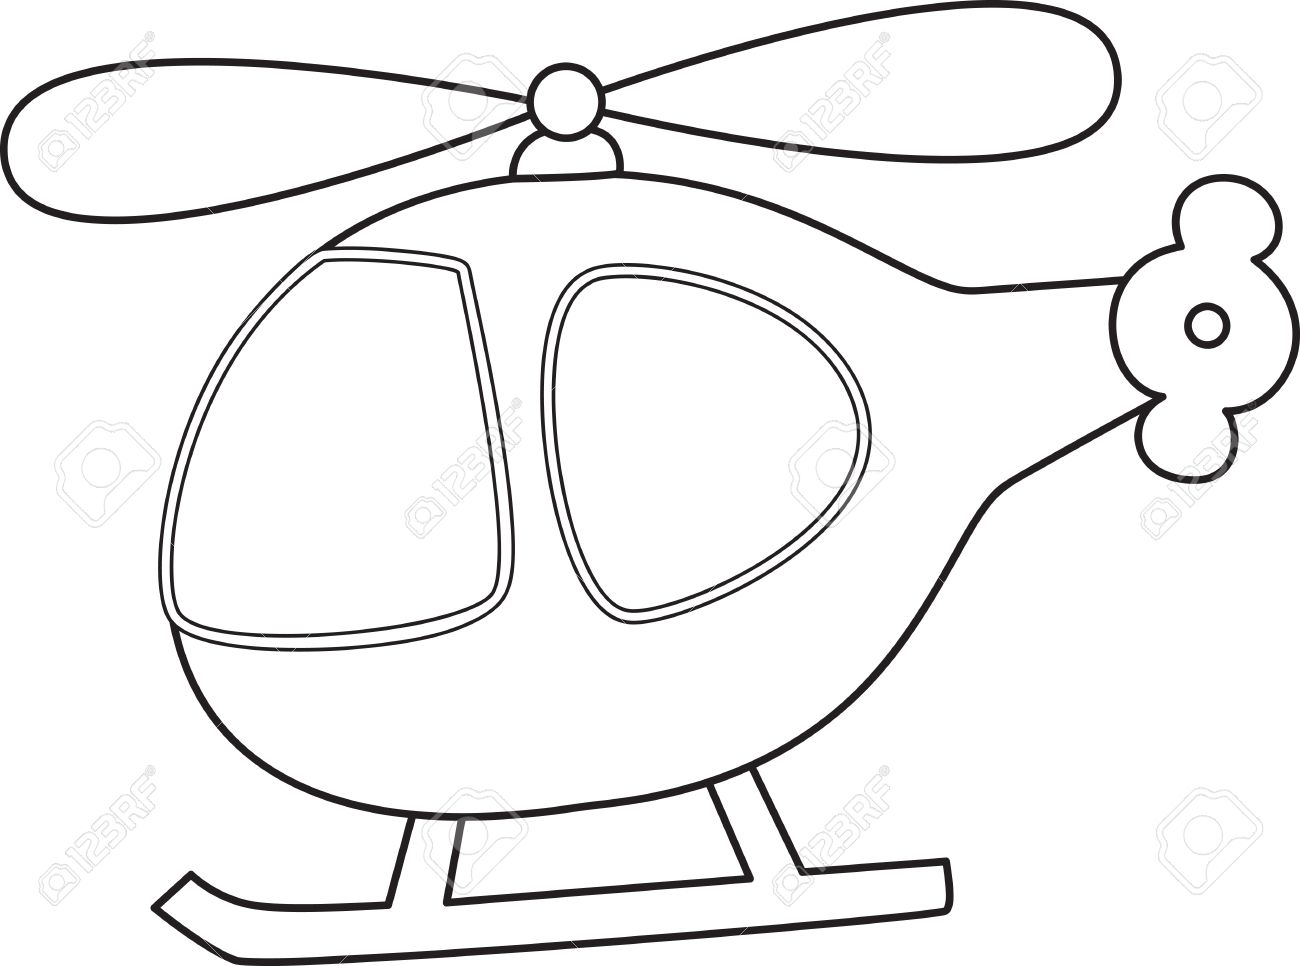 Helicopter Clipart Black And White.